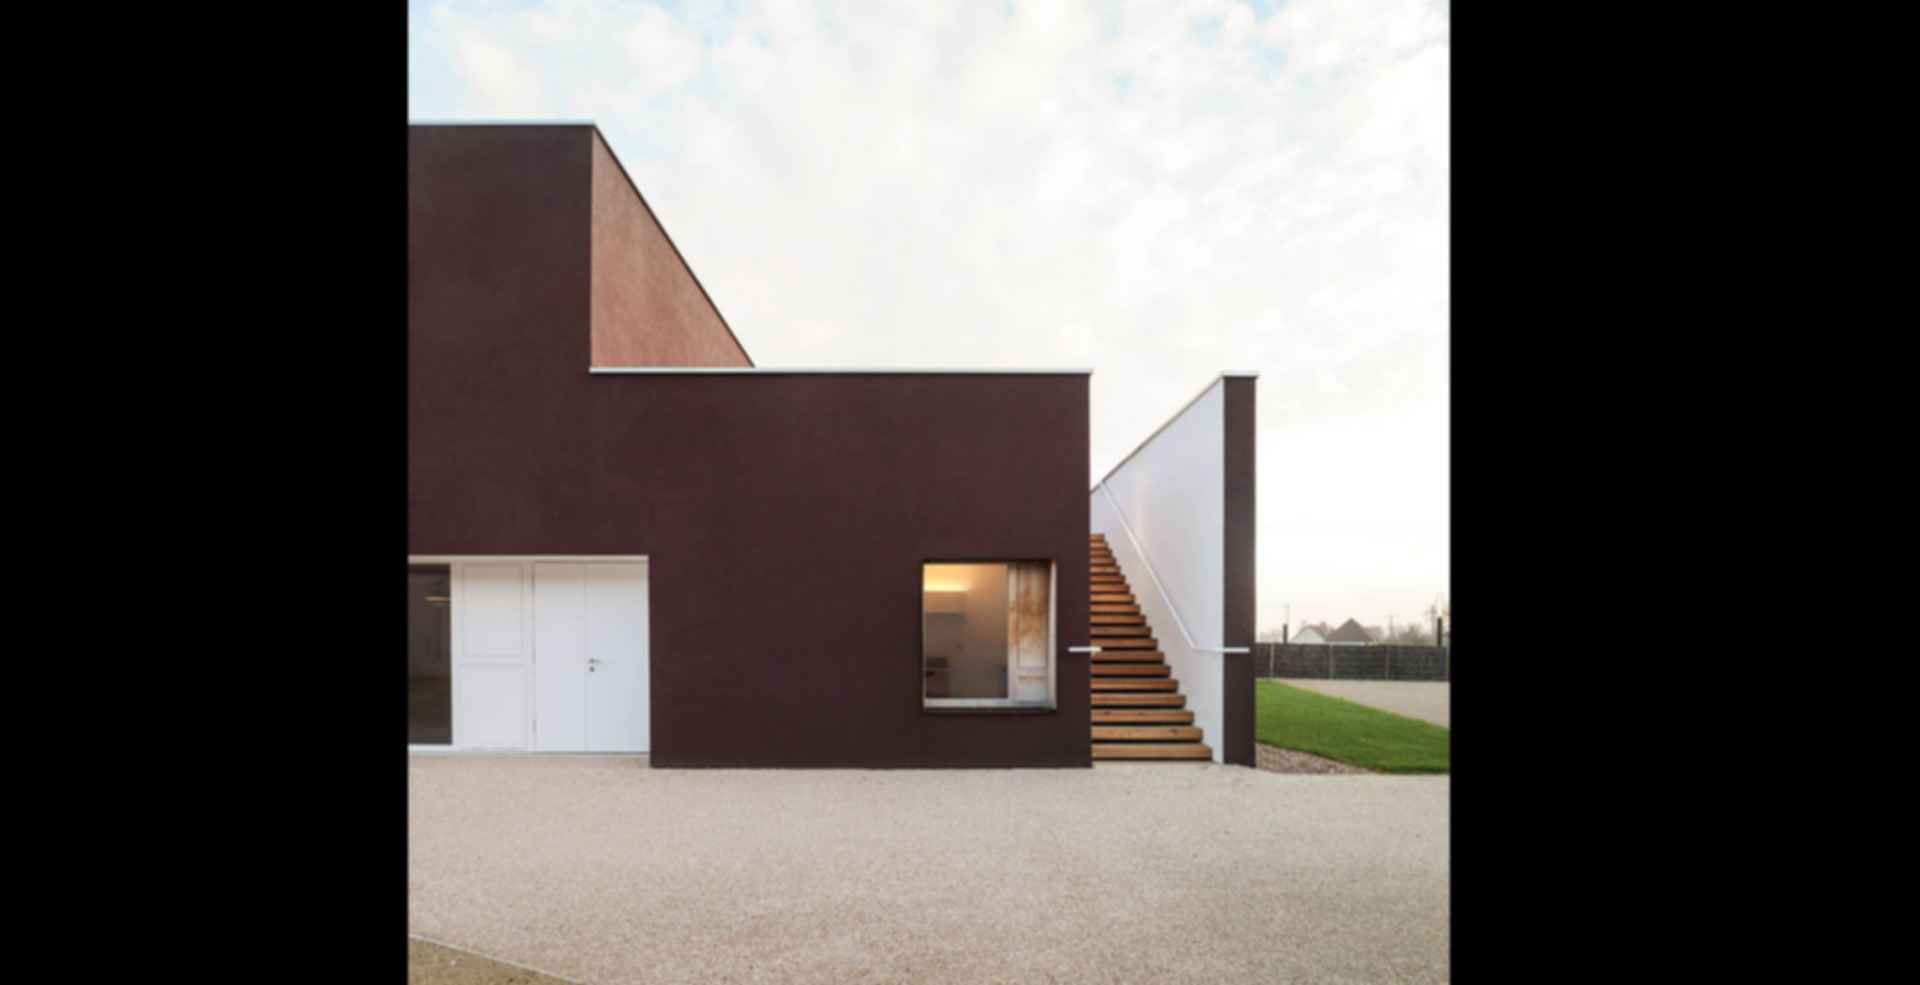 92-Bed Nursing Home - exterior/entrance/stairs